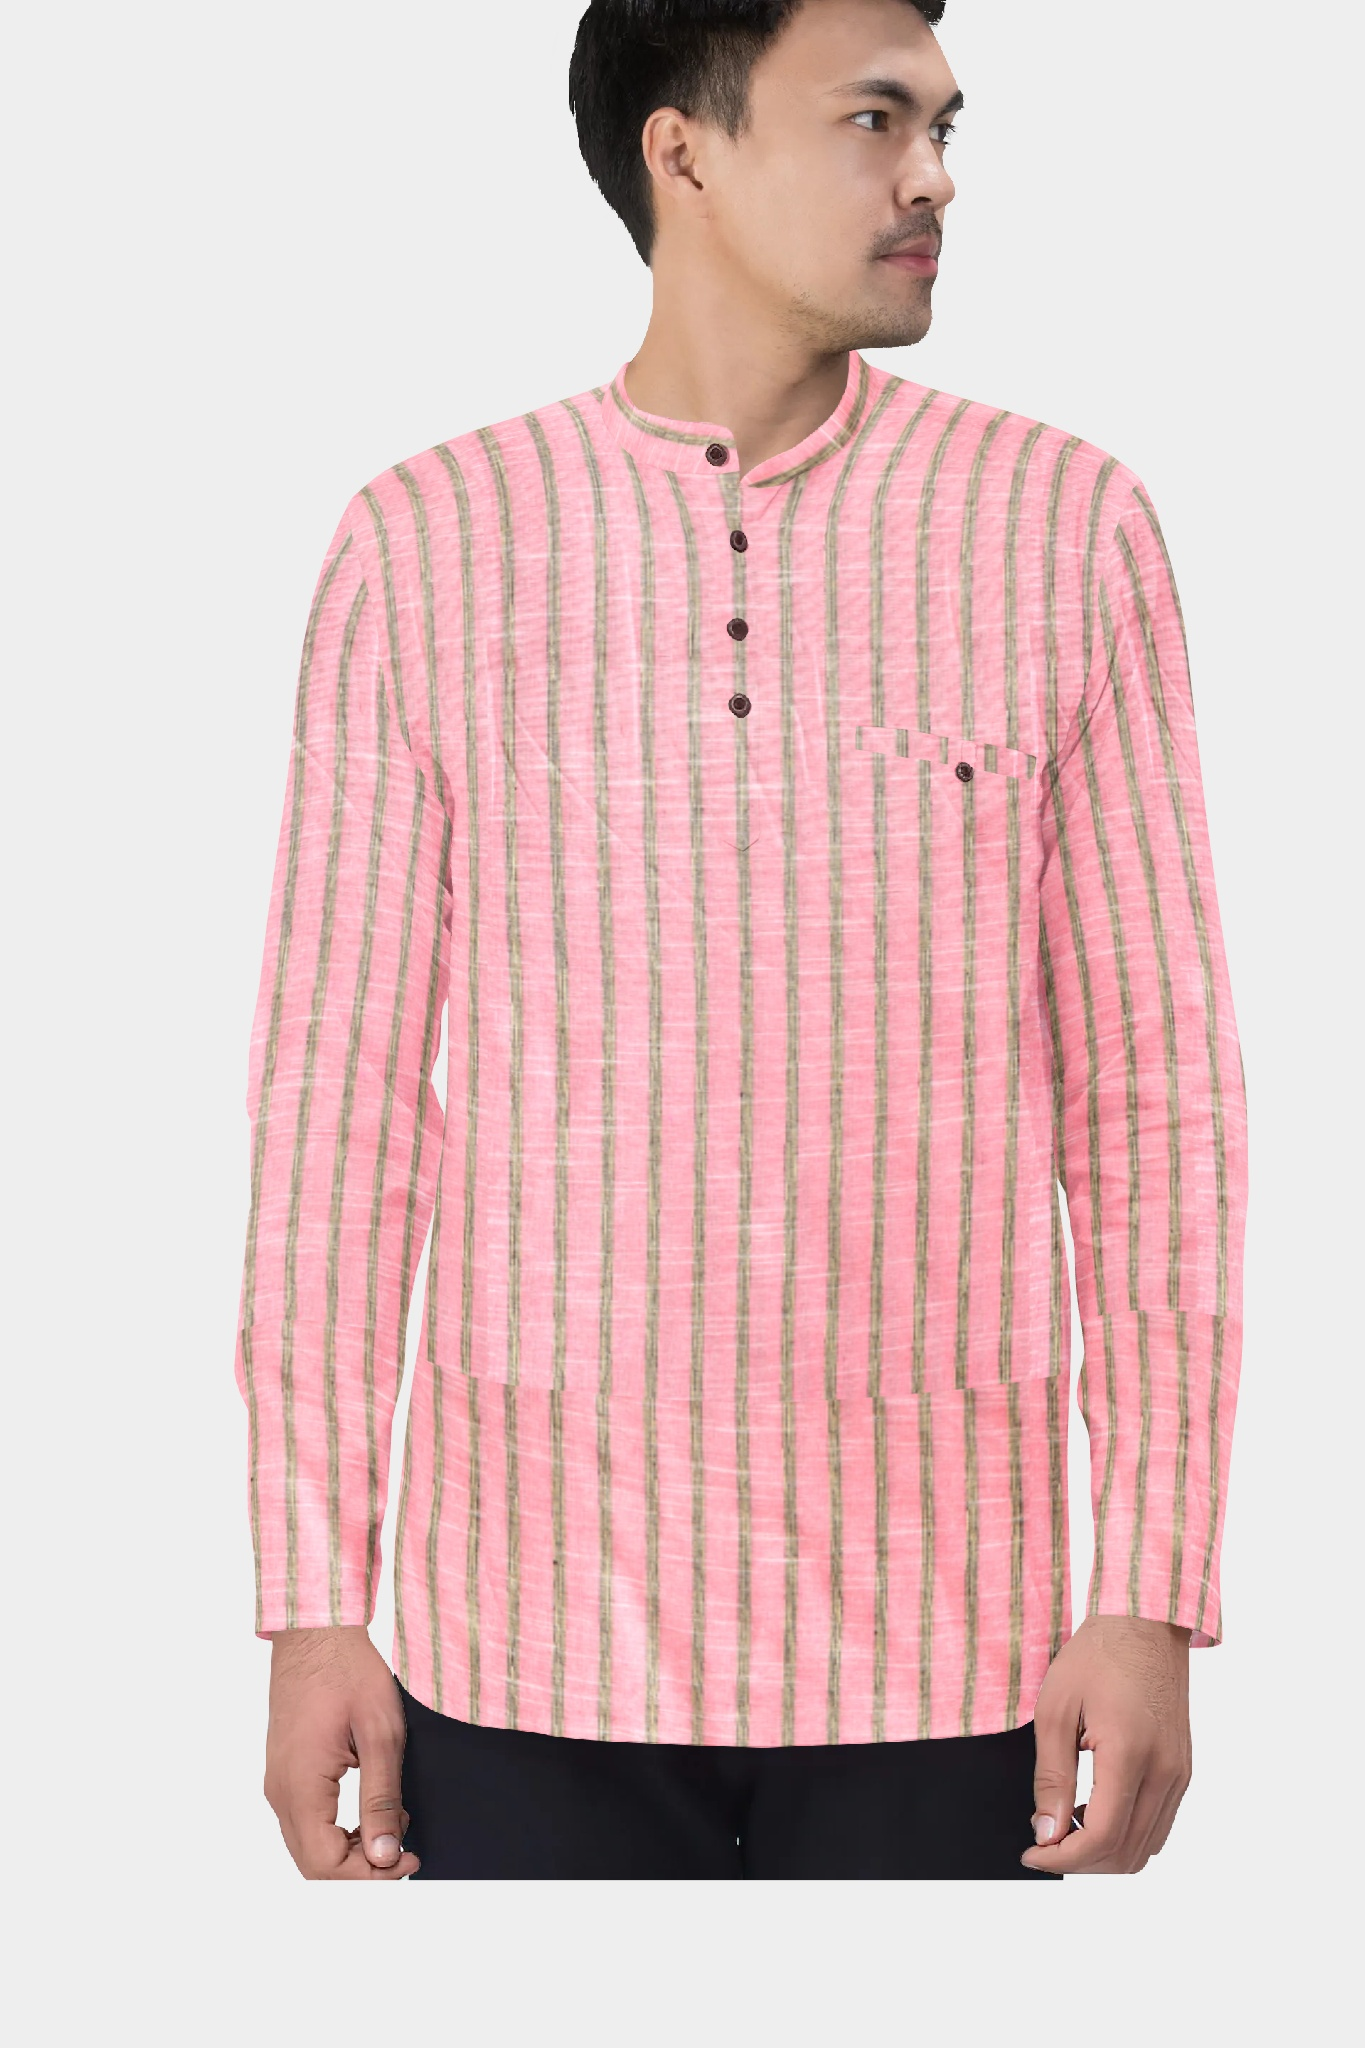 /home/customer/www/fabartcraft.com/public_html/uploadshttps://www.shopolics.com/uploads/images/medium/Pink-Black-Cotton-Short-Kurta-35435.jpg